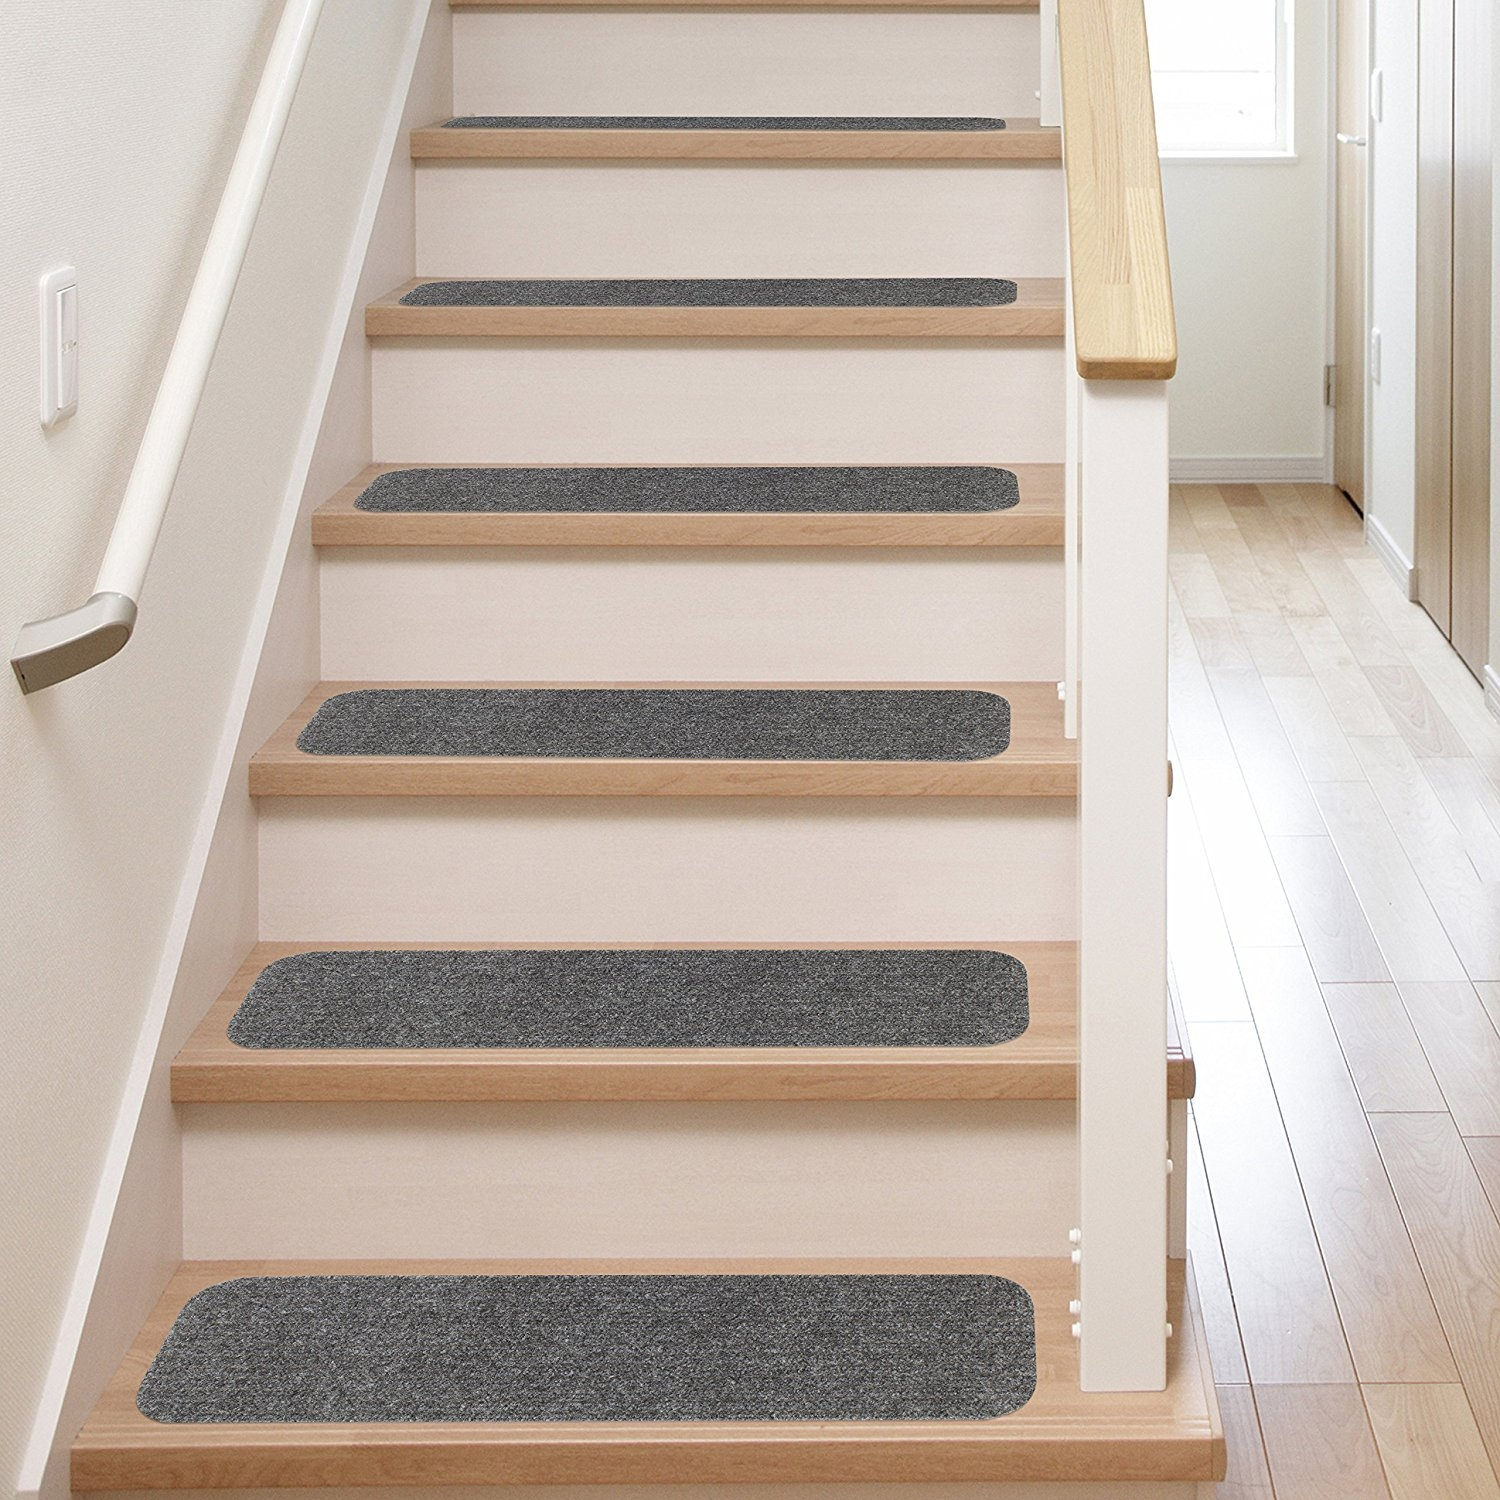 Bon Inspiration About Using Carpet Stair Treads For Safety Reasons Vwho Inside  Stair Treads Landing Rug (